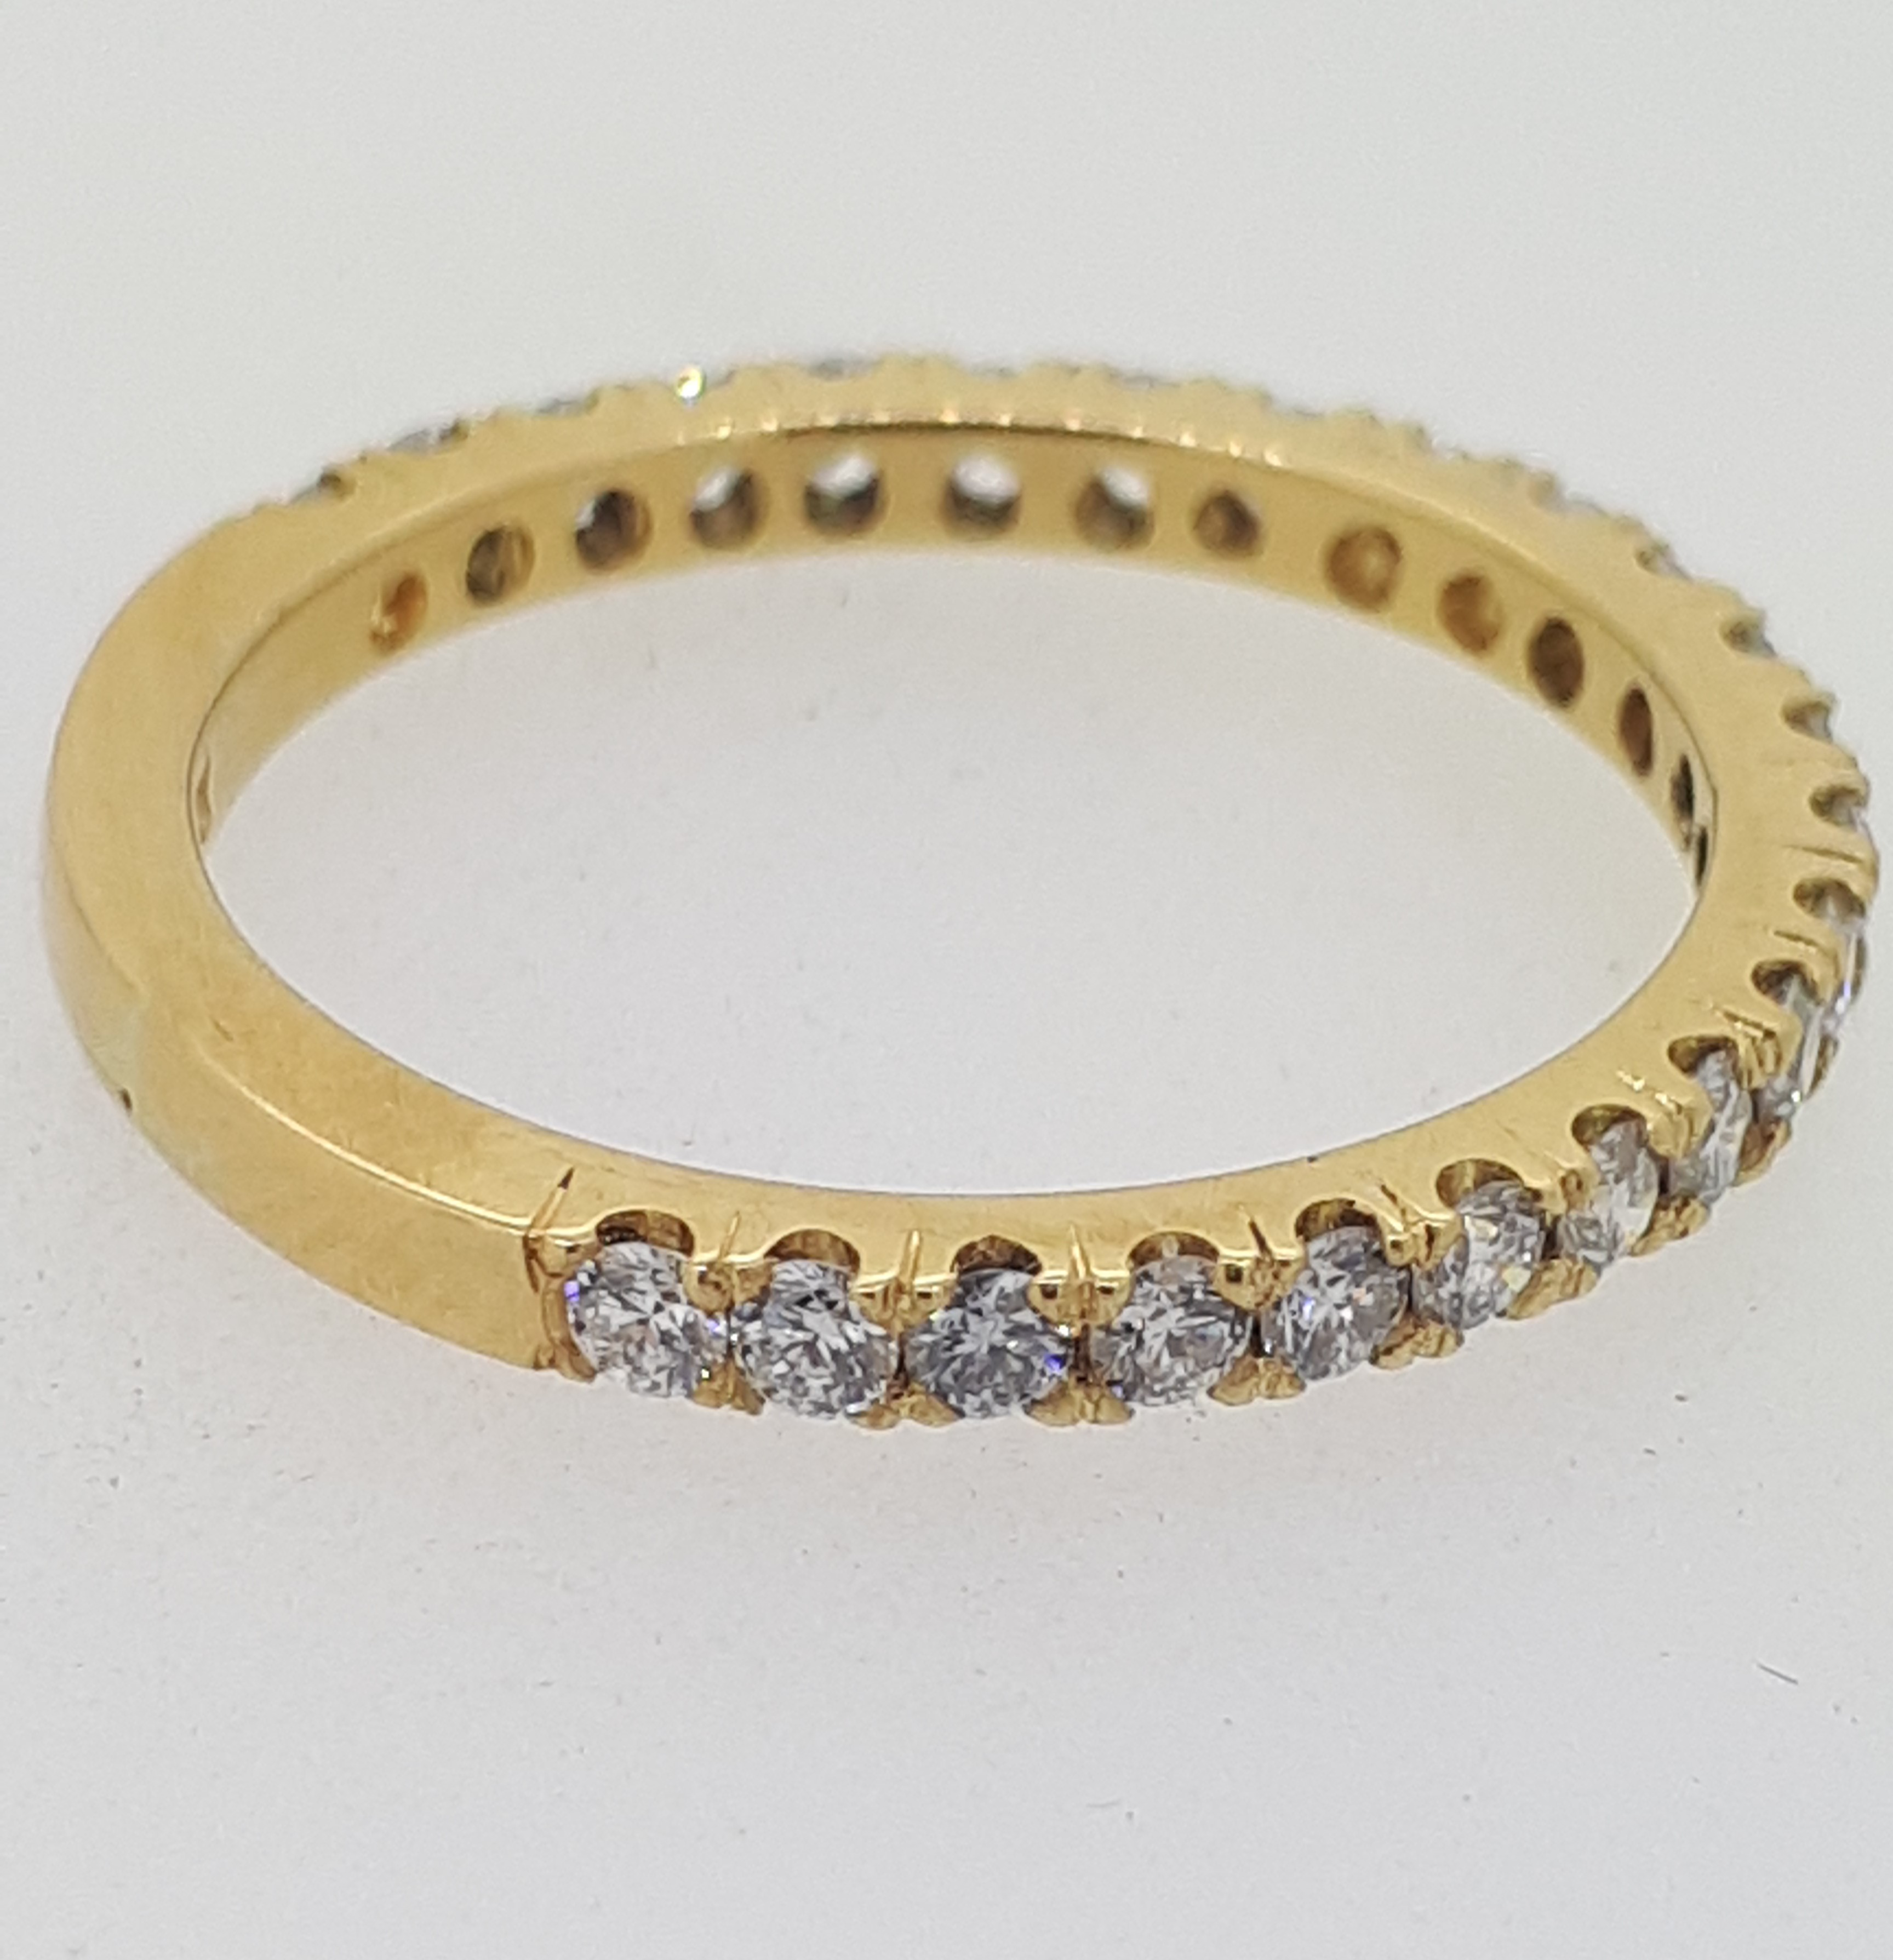 Handmade 18ct (750) yellow Gold 0.25ct 3/4 Claw Set Eternity Ring - Image 4 of 6